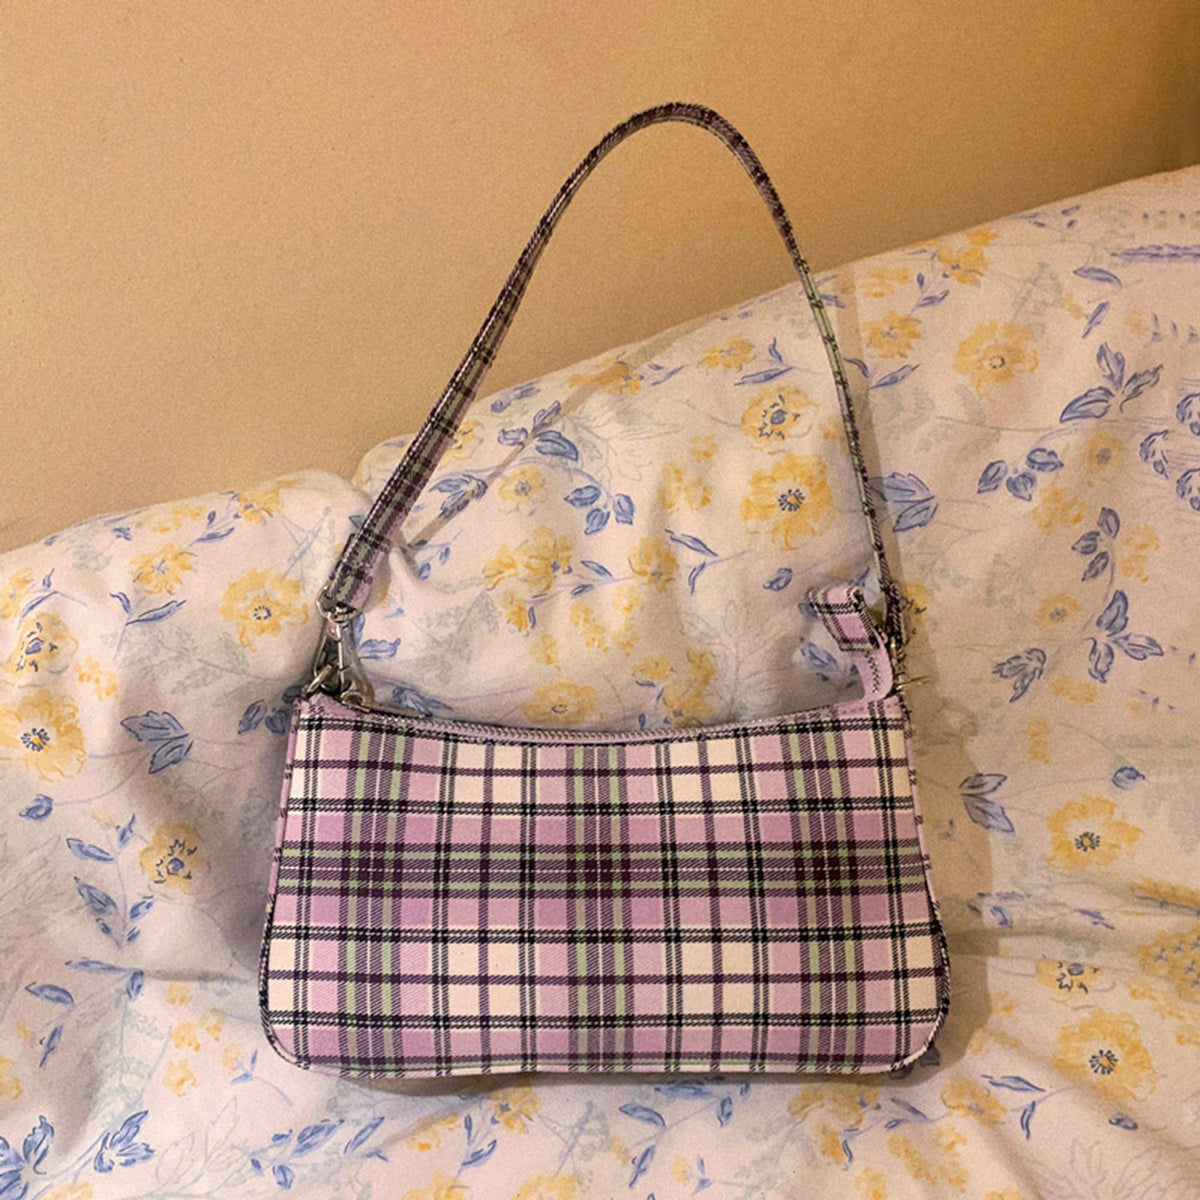 Vintage Checked Shoulder Bag